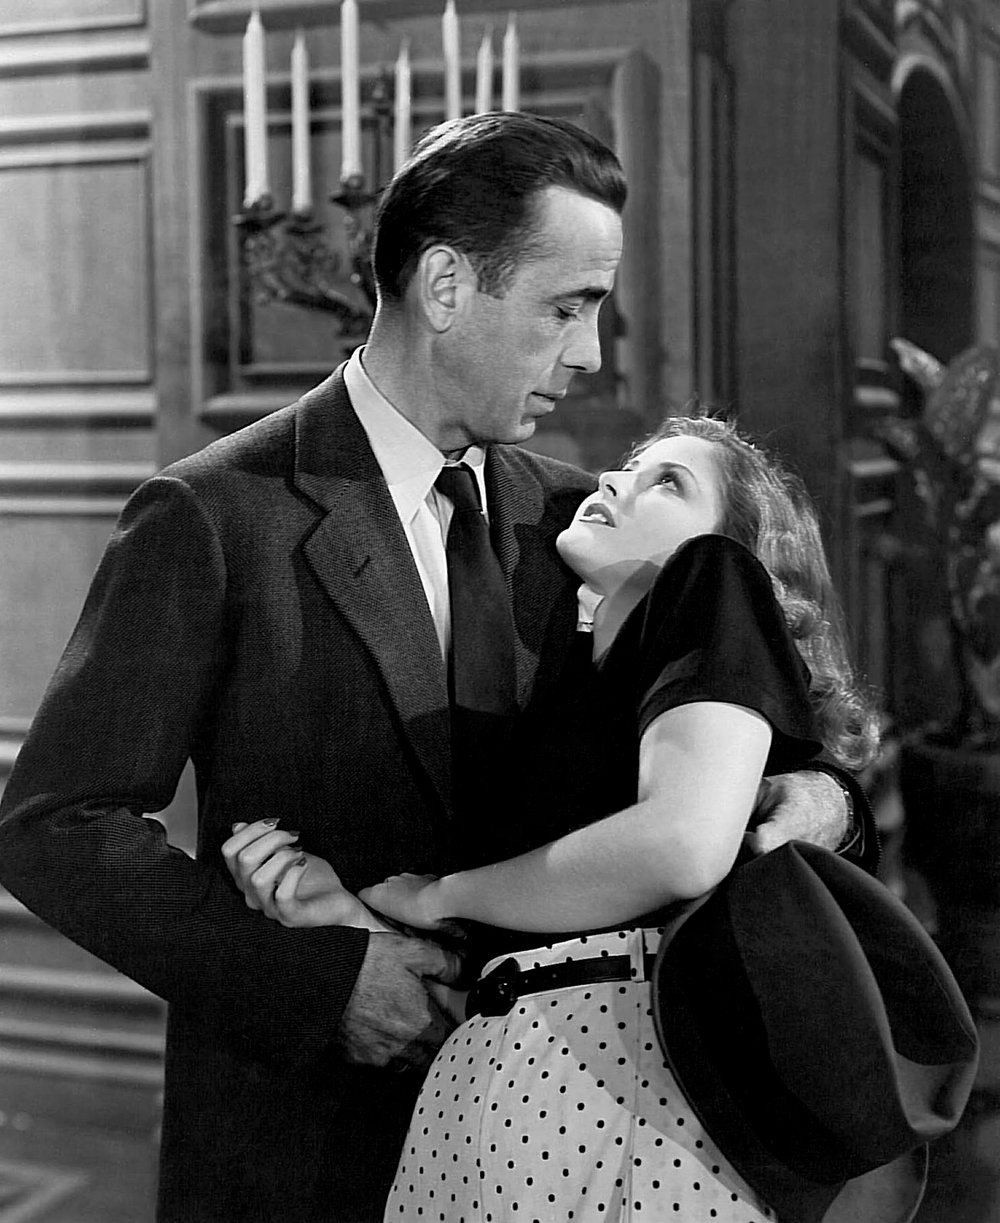 184. The Big Sleep (1946)